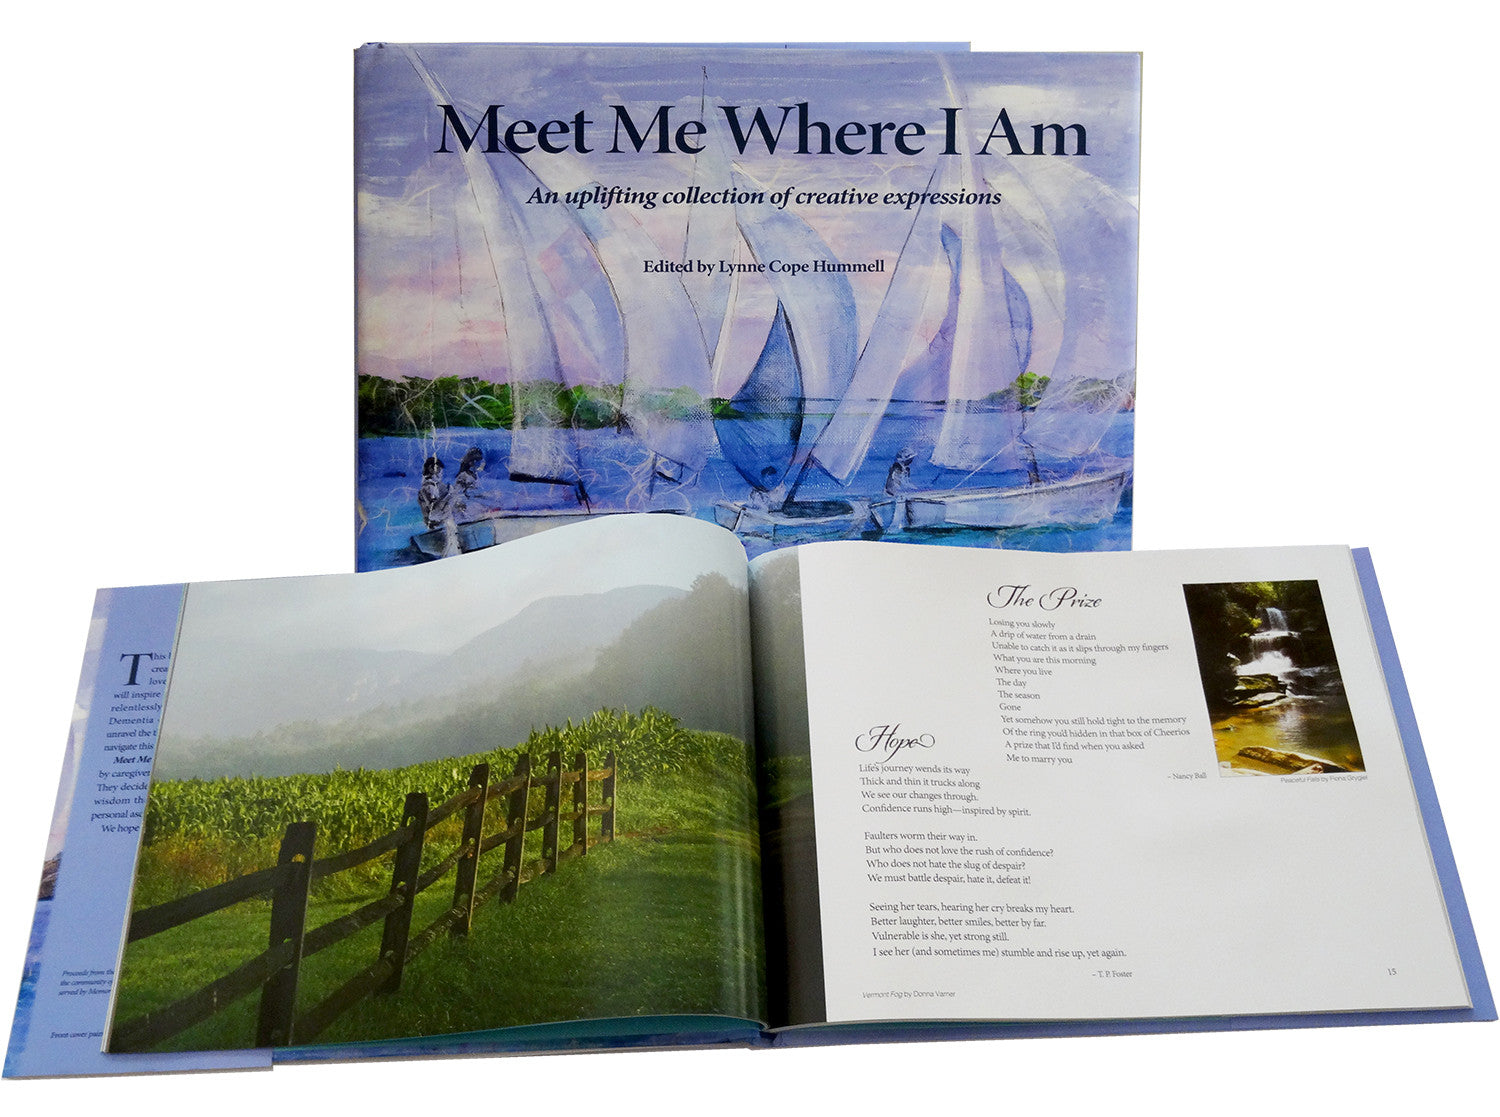 Meet Me Where I Am Book: Uplifting collection of creative expressions. Fundraiser for Memory Matters Hilton Head Island